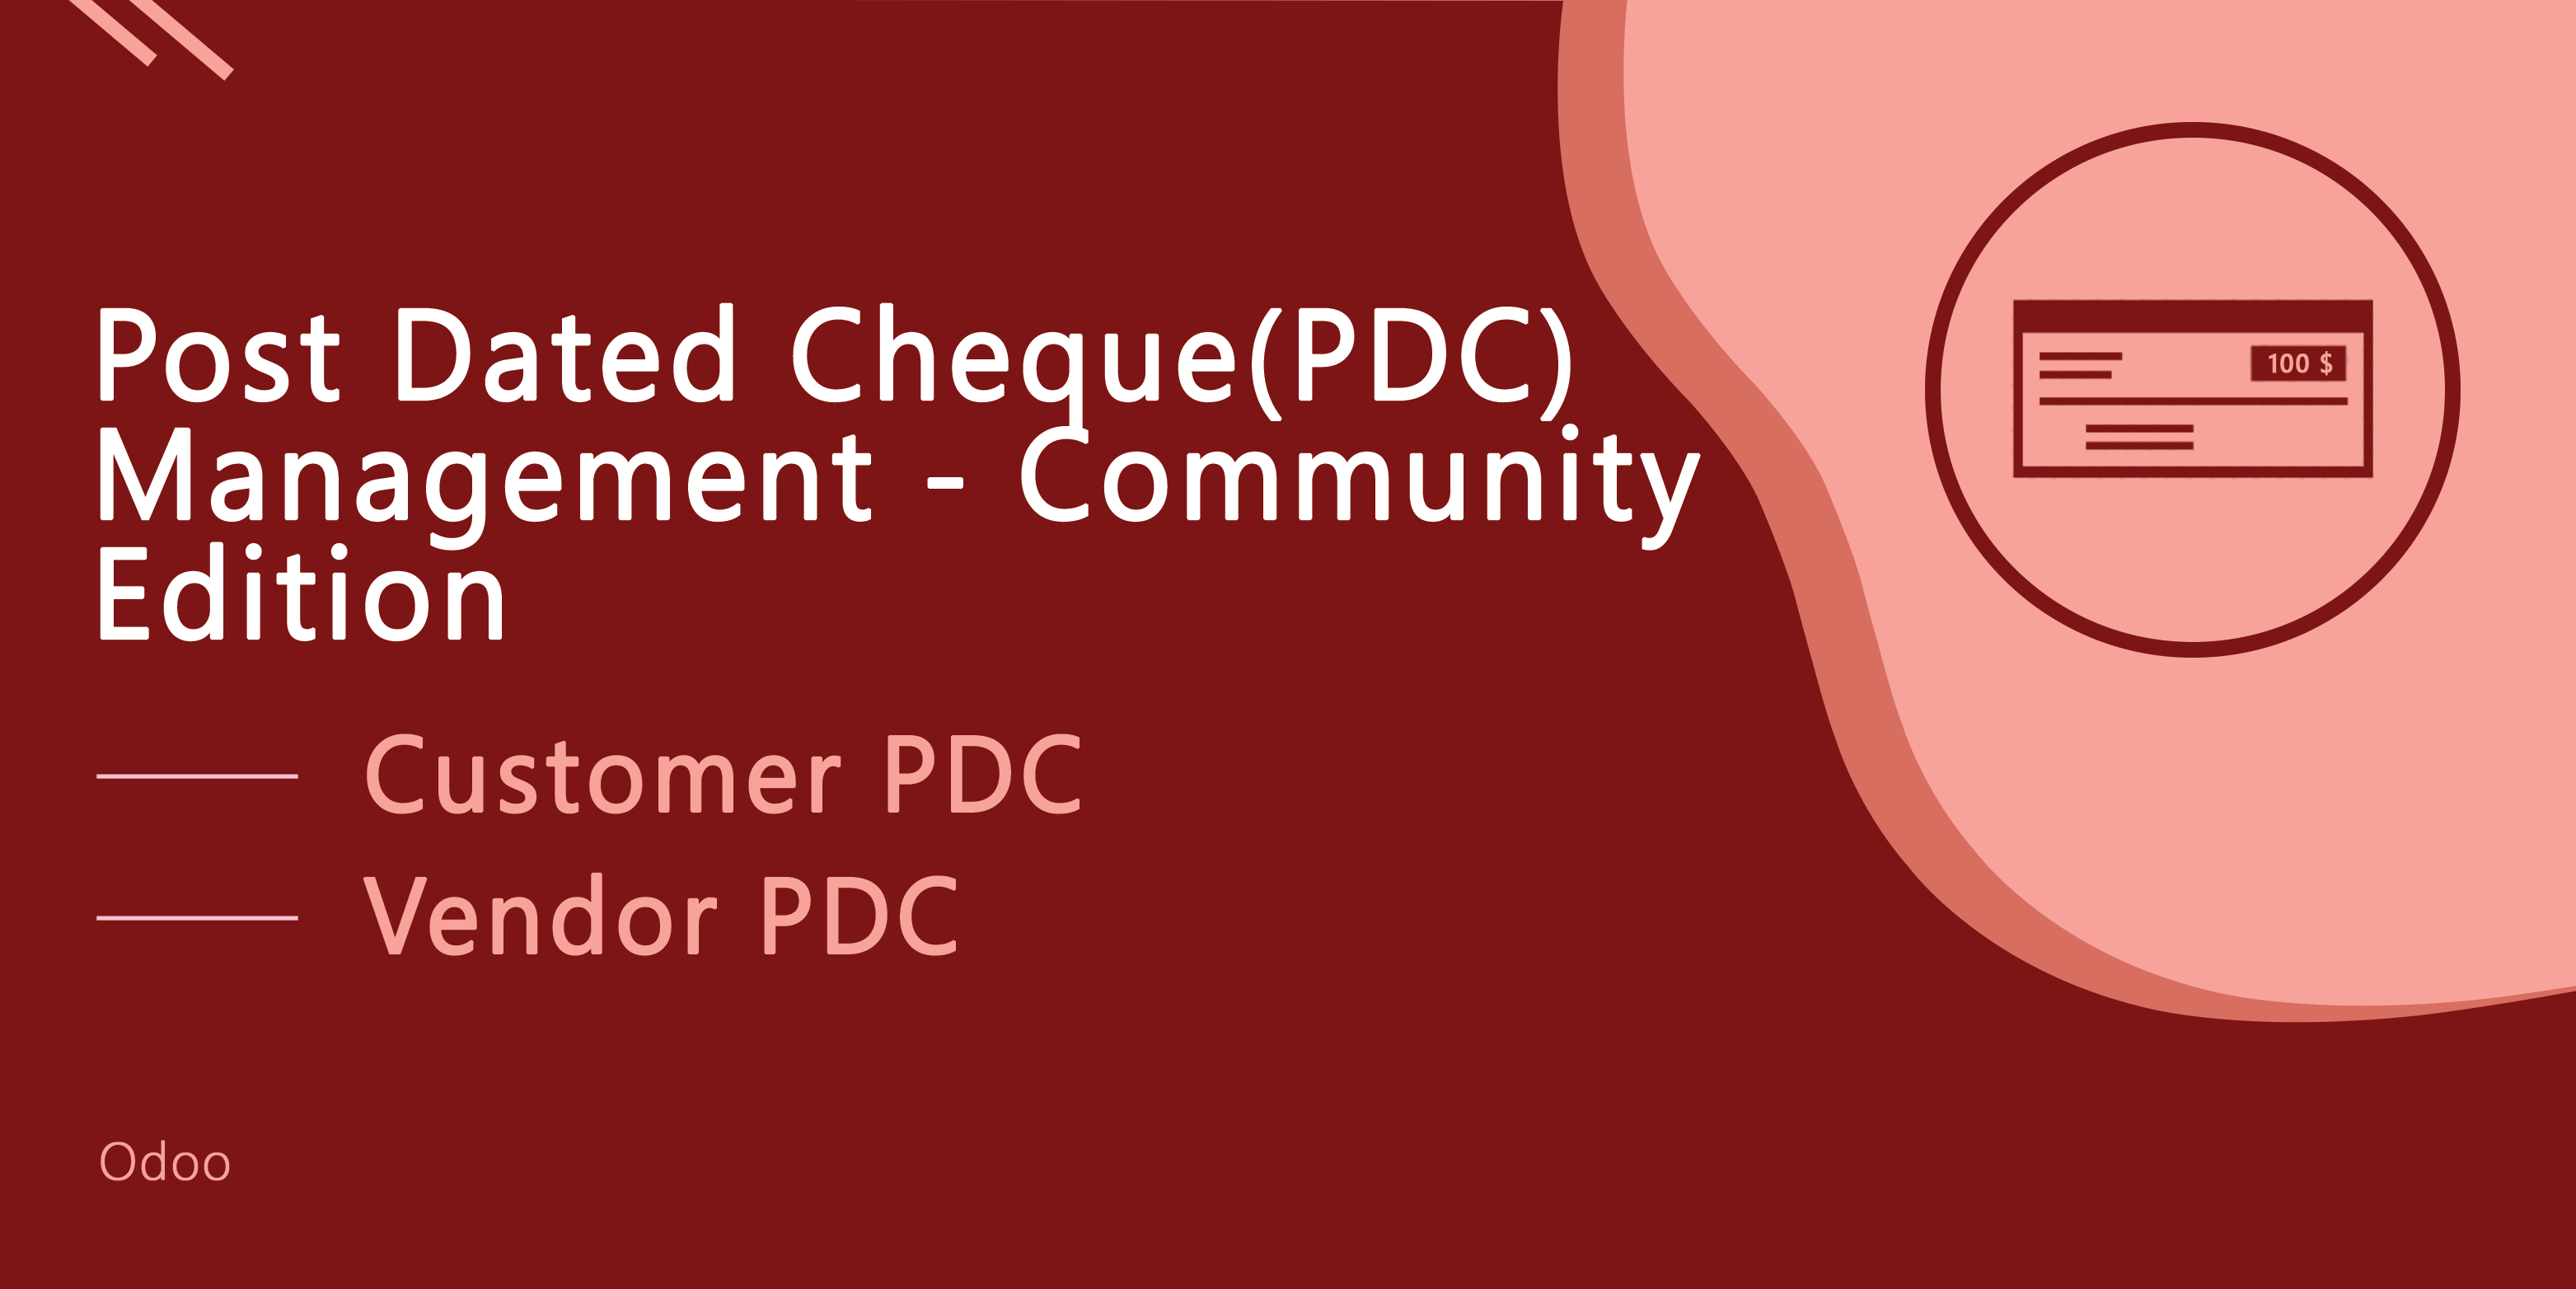 Post Dated Cheque Management